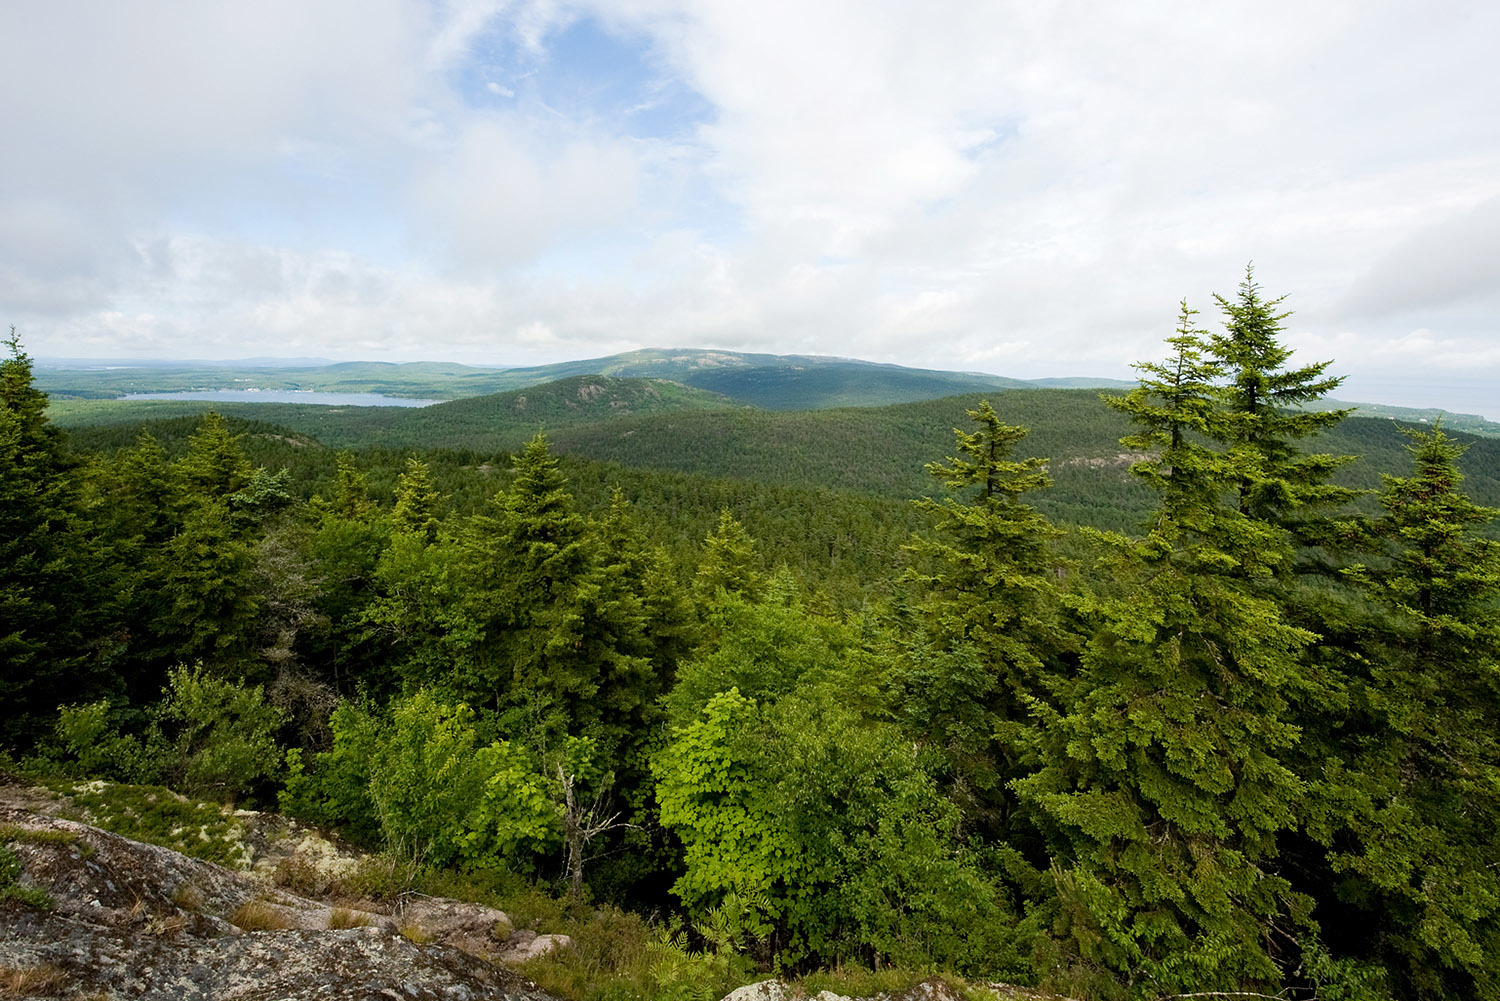 St. Sauveur, Acadia & Parkman Mountain - Beech Mountain Summit